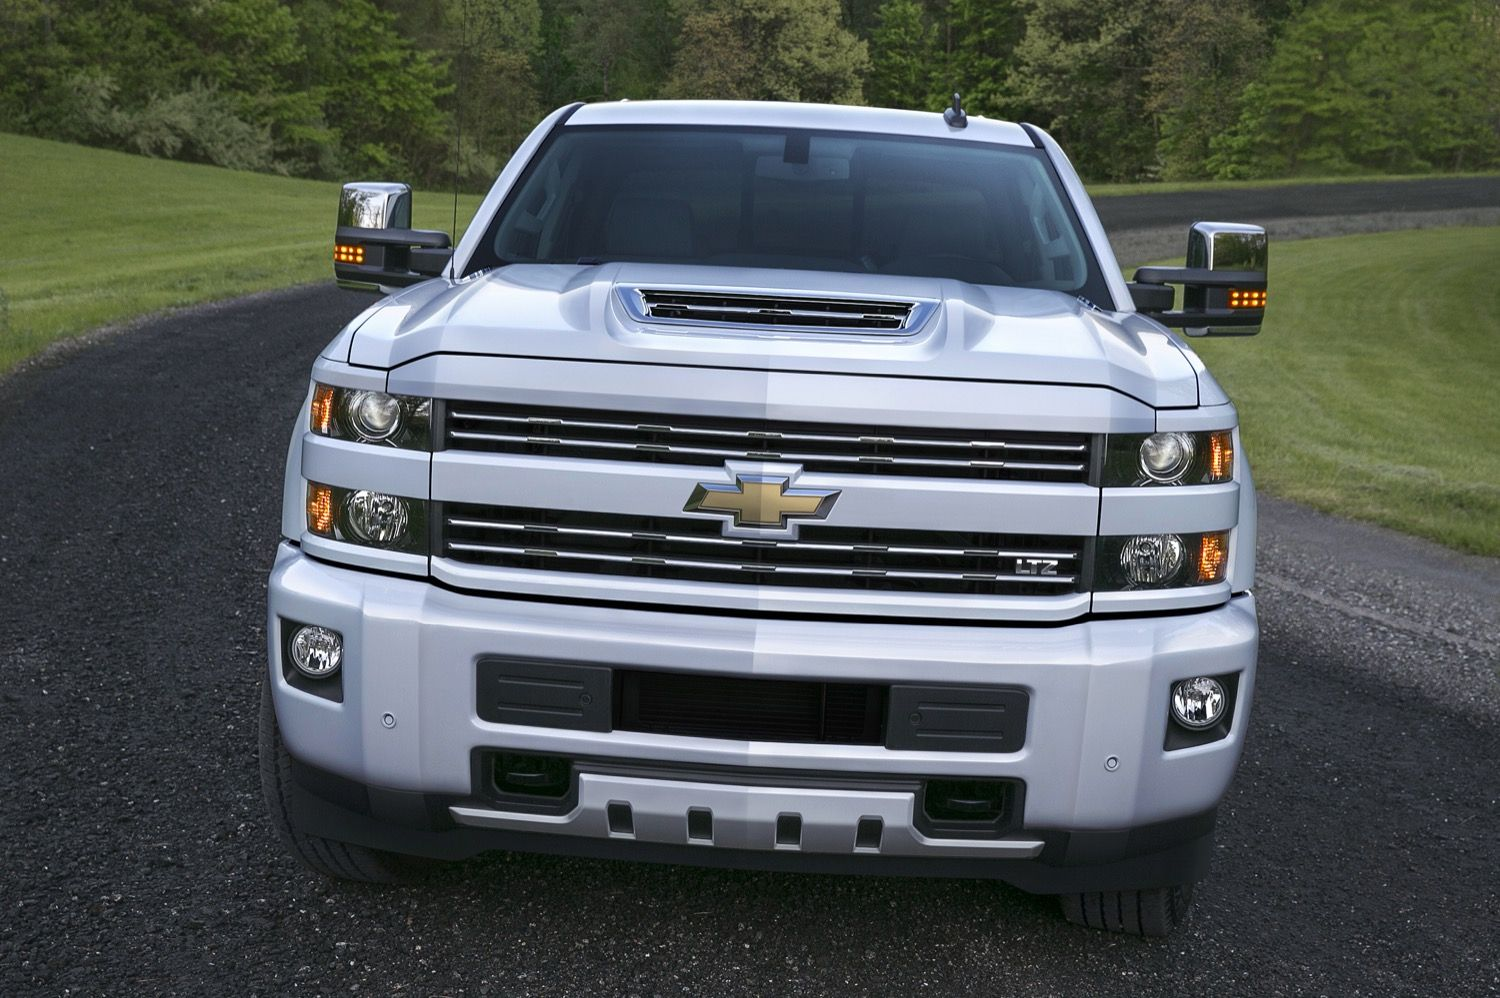 Review 2019 Chevy Silverado 2500 Duramax Problems And Images Feels Free To Follow Us Di 2020 Kendaraan Mobil